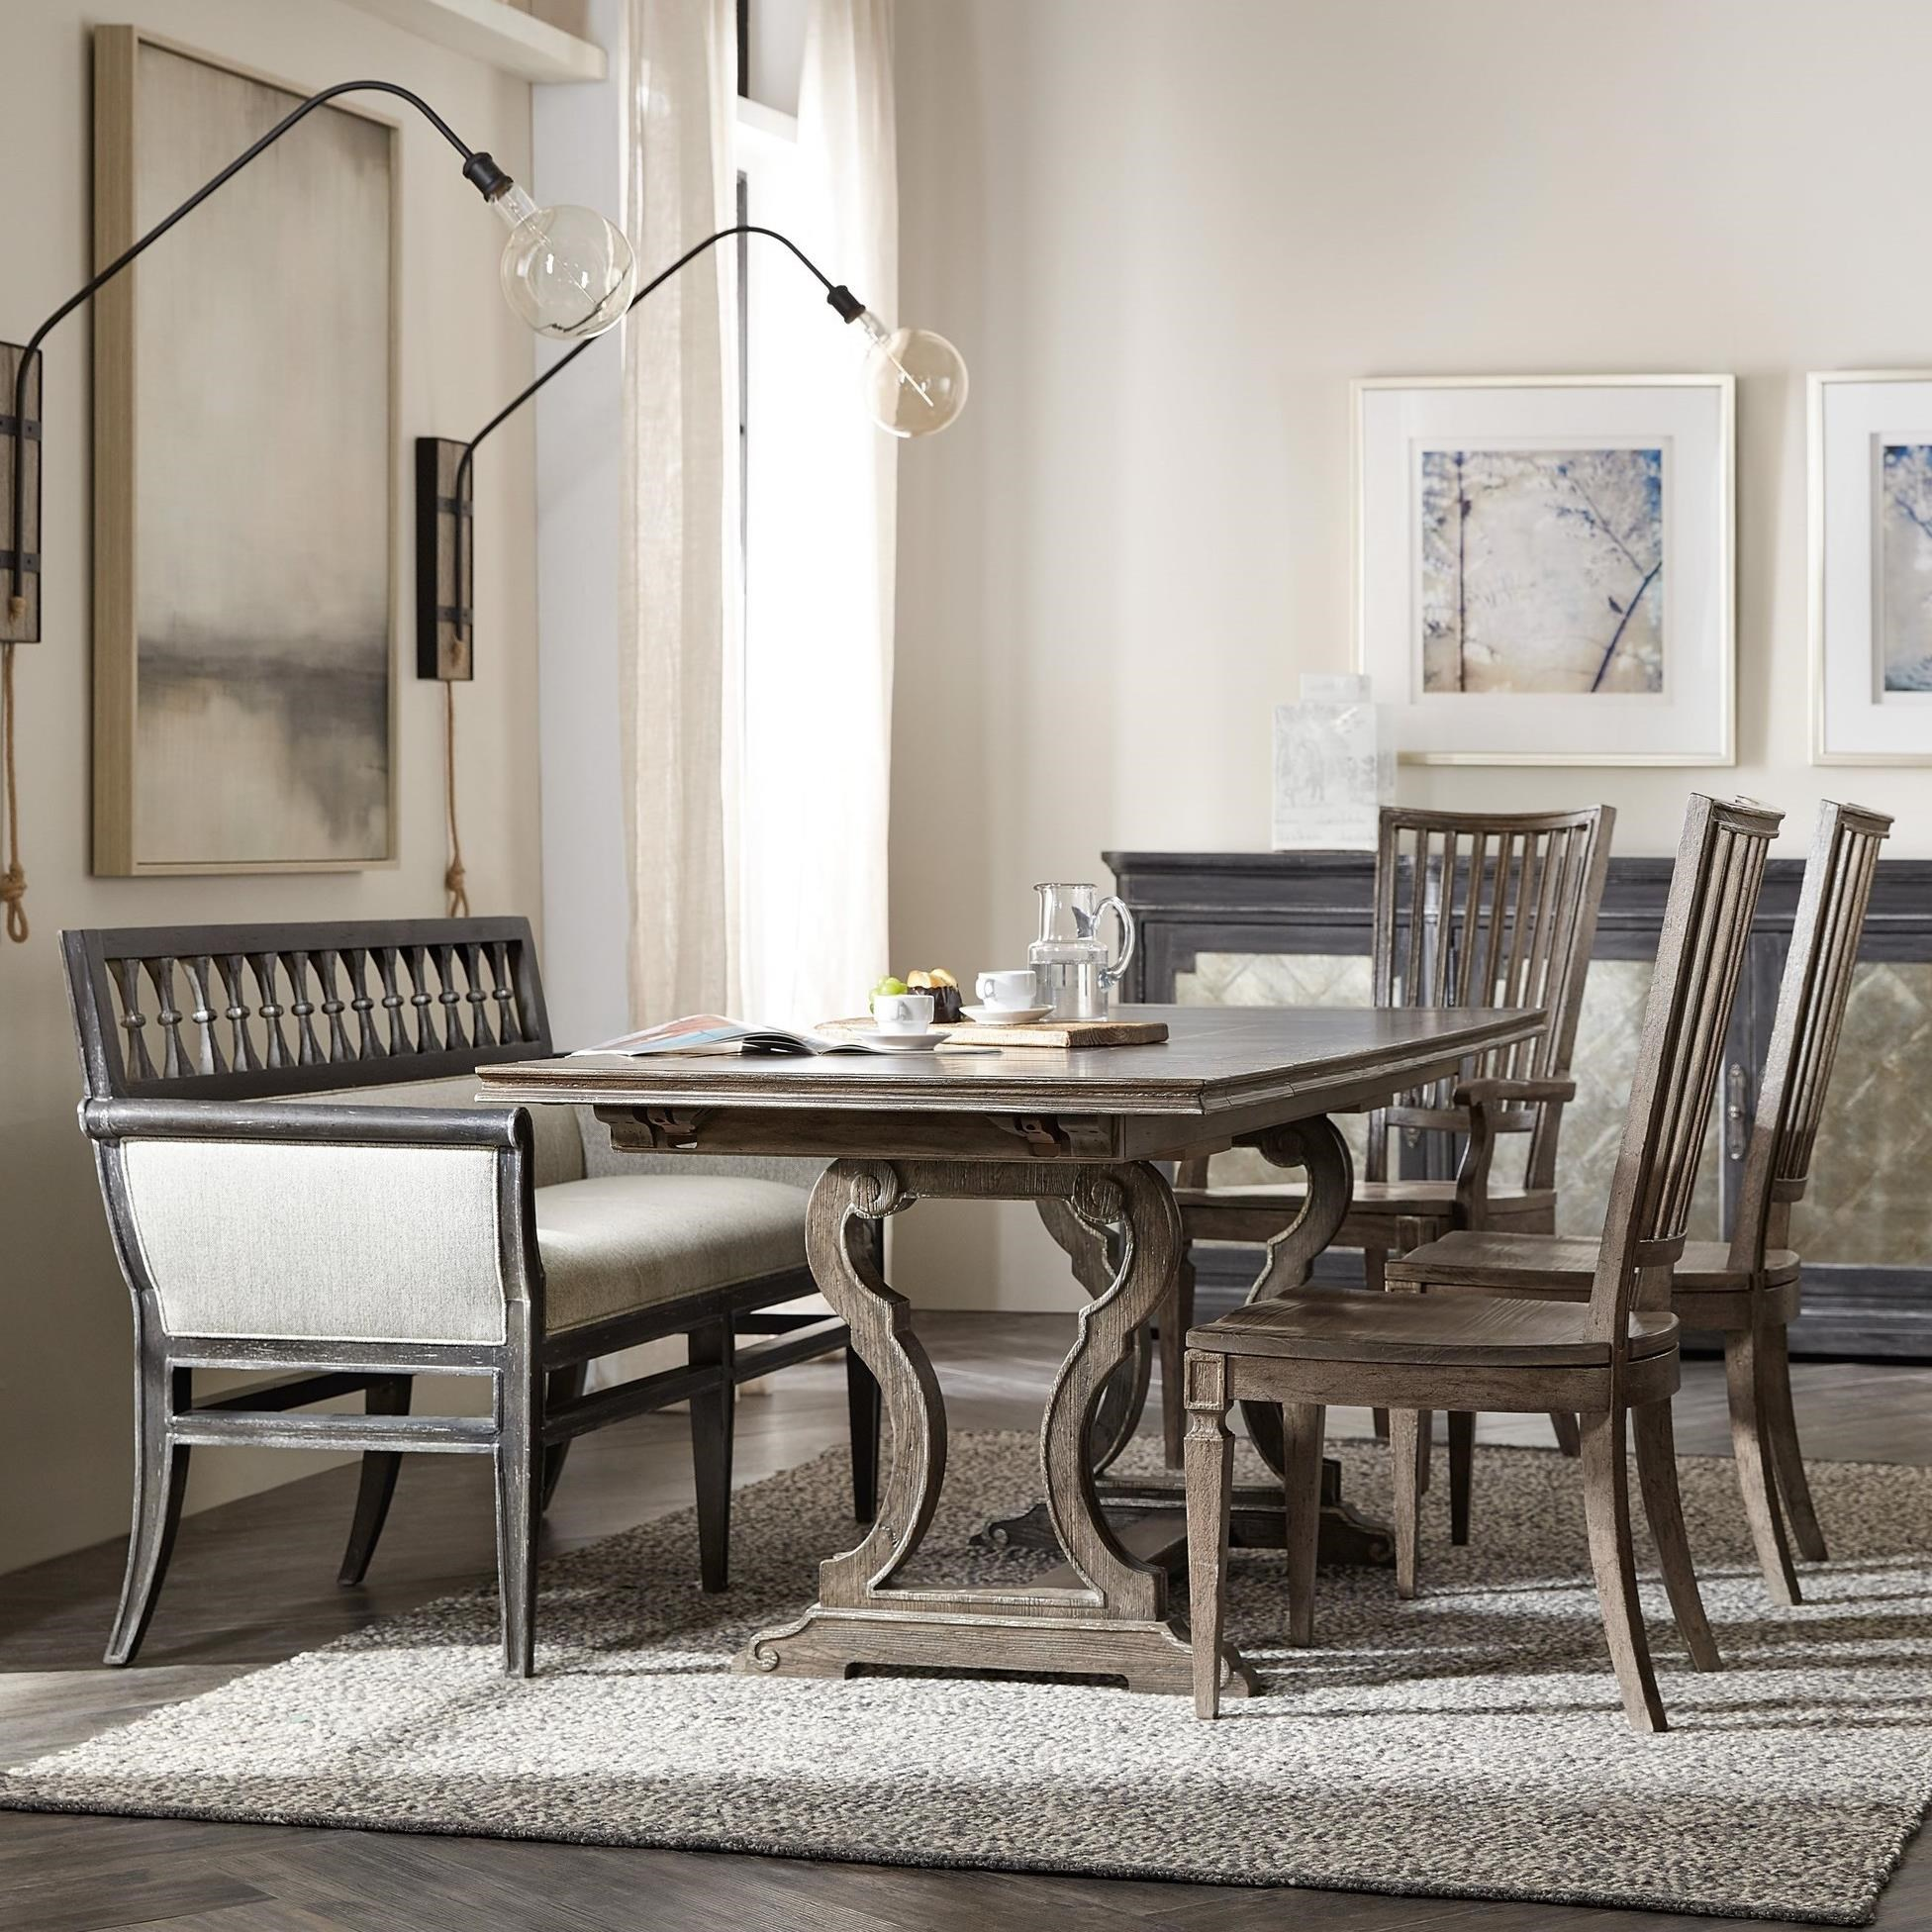 Woodlands 5-Piece Table and Chair Set with Banquette by Hooker Furniture at Stoney Creek Furniture